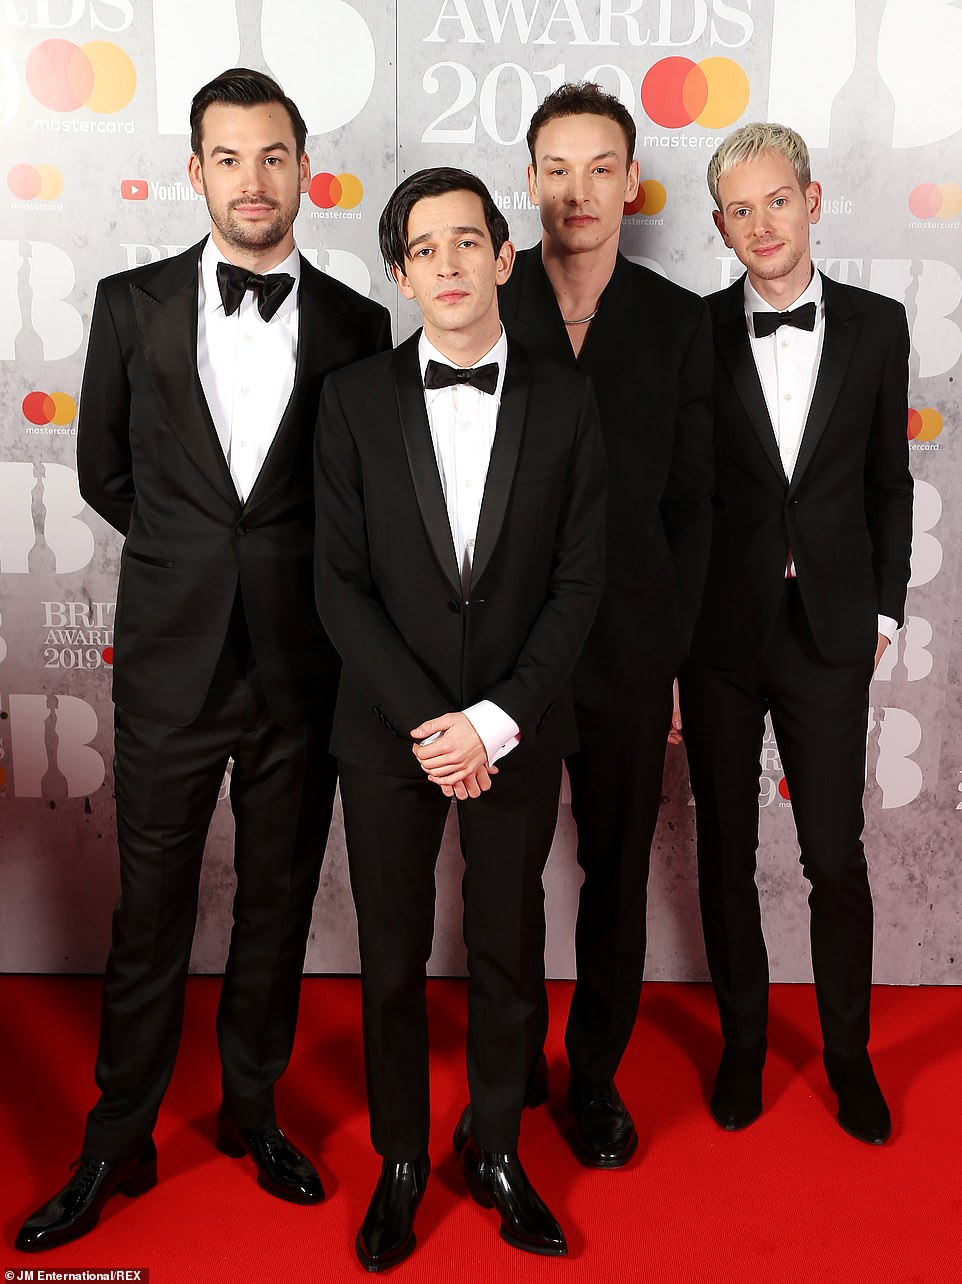 Winners: The 1975 (pictured) took home the Best British Group prize